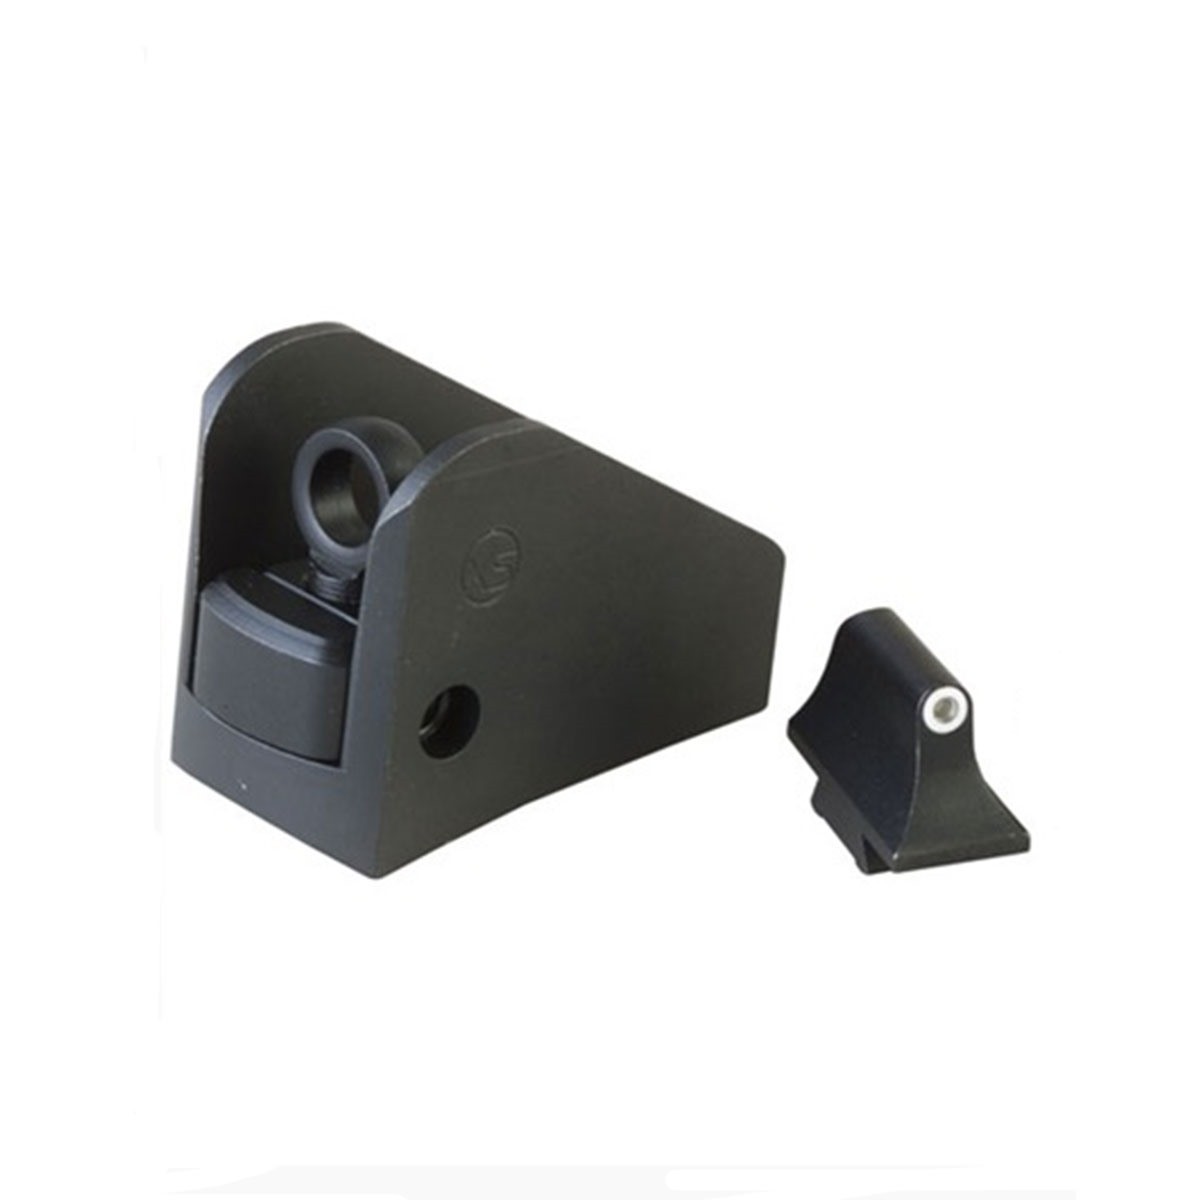 Security Cameras For Home Use